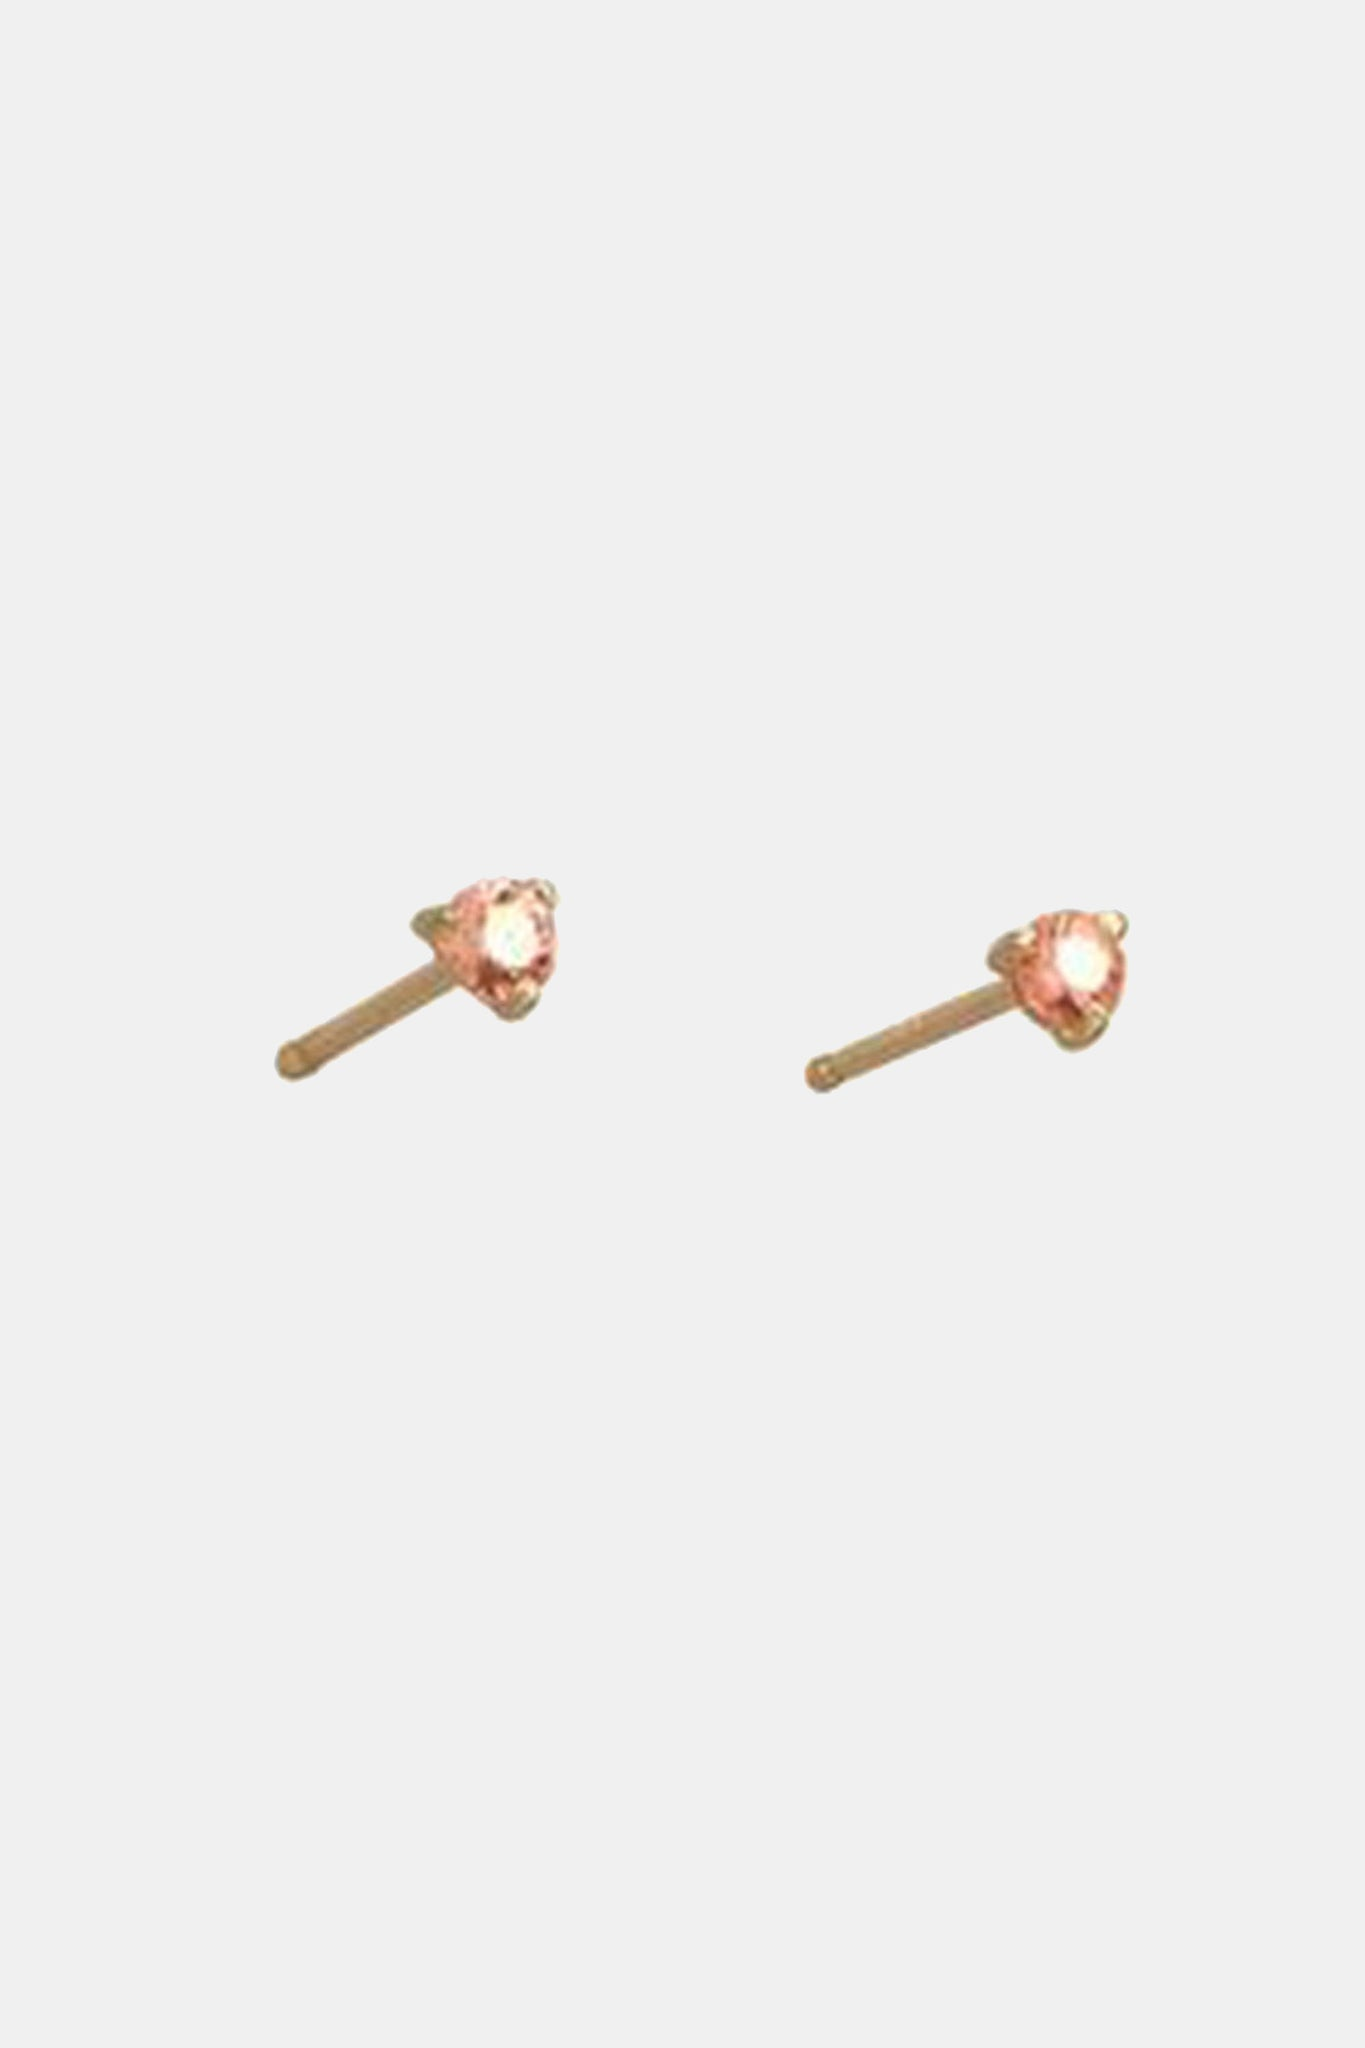 WWAKE - small stud earrings, pink tourmaline